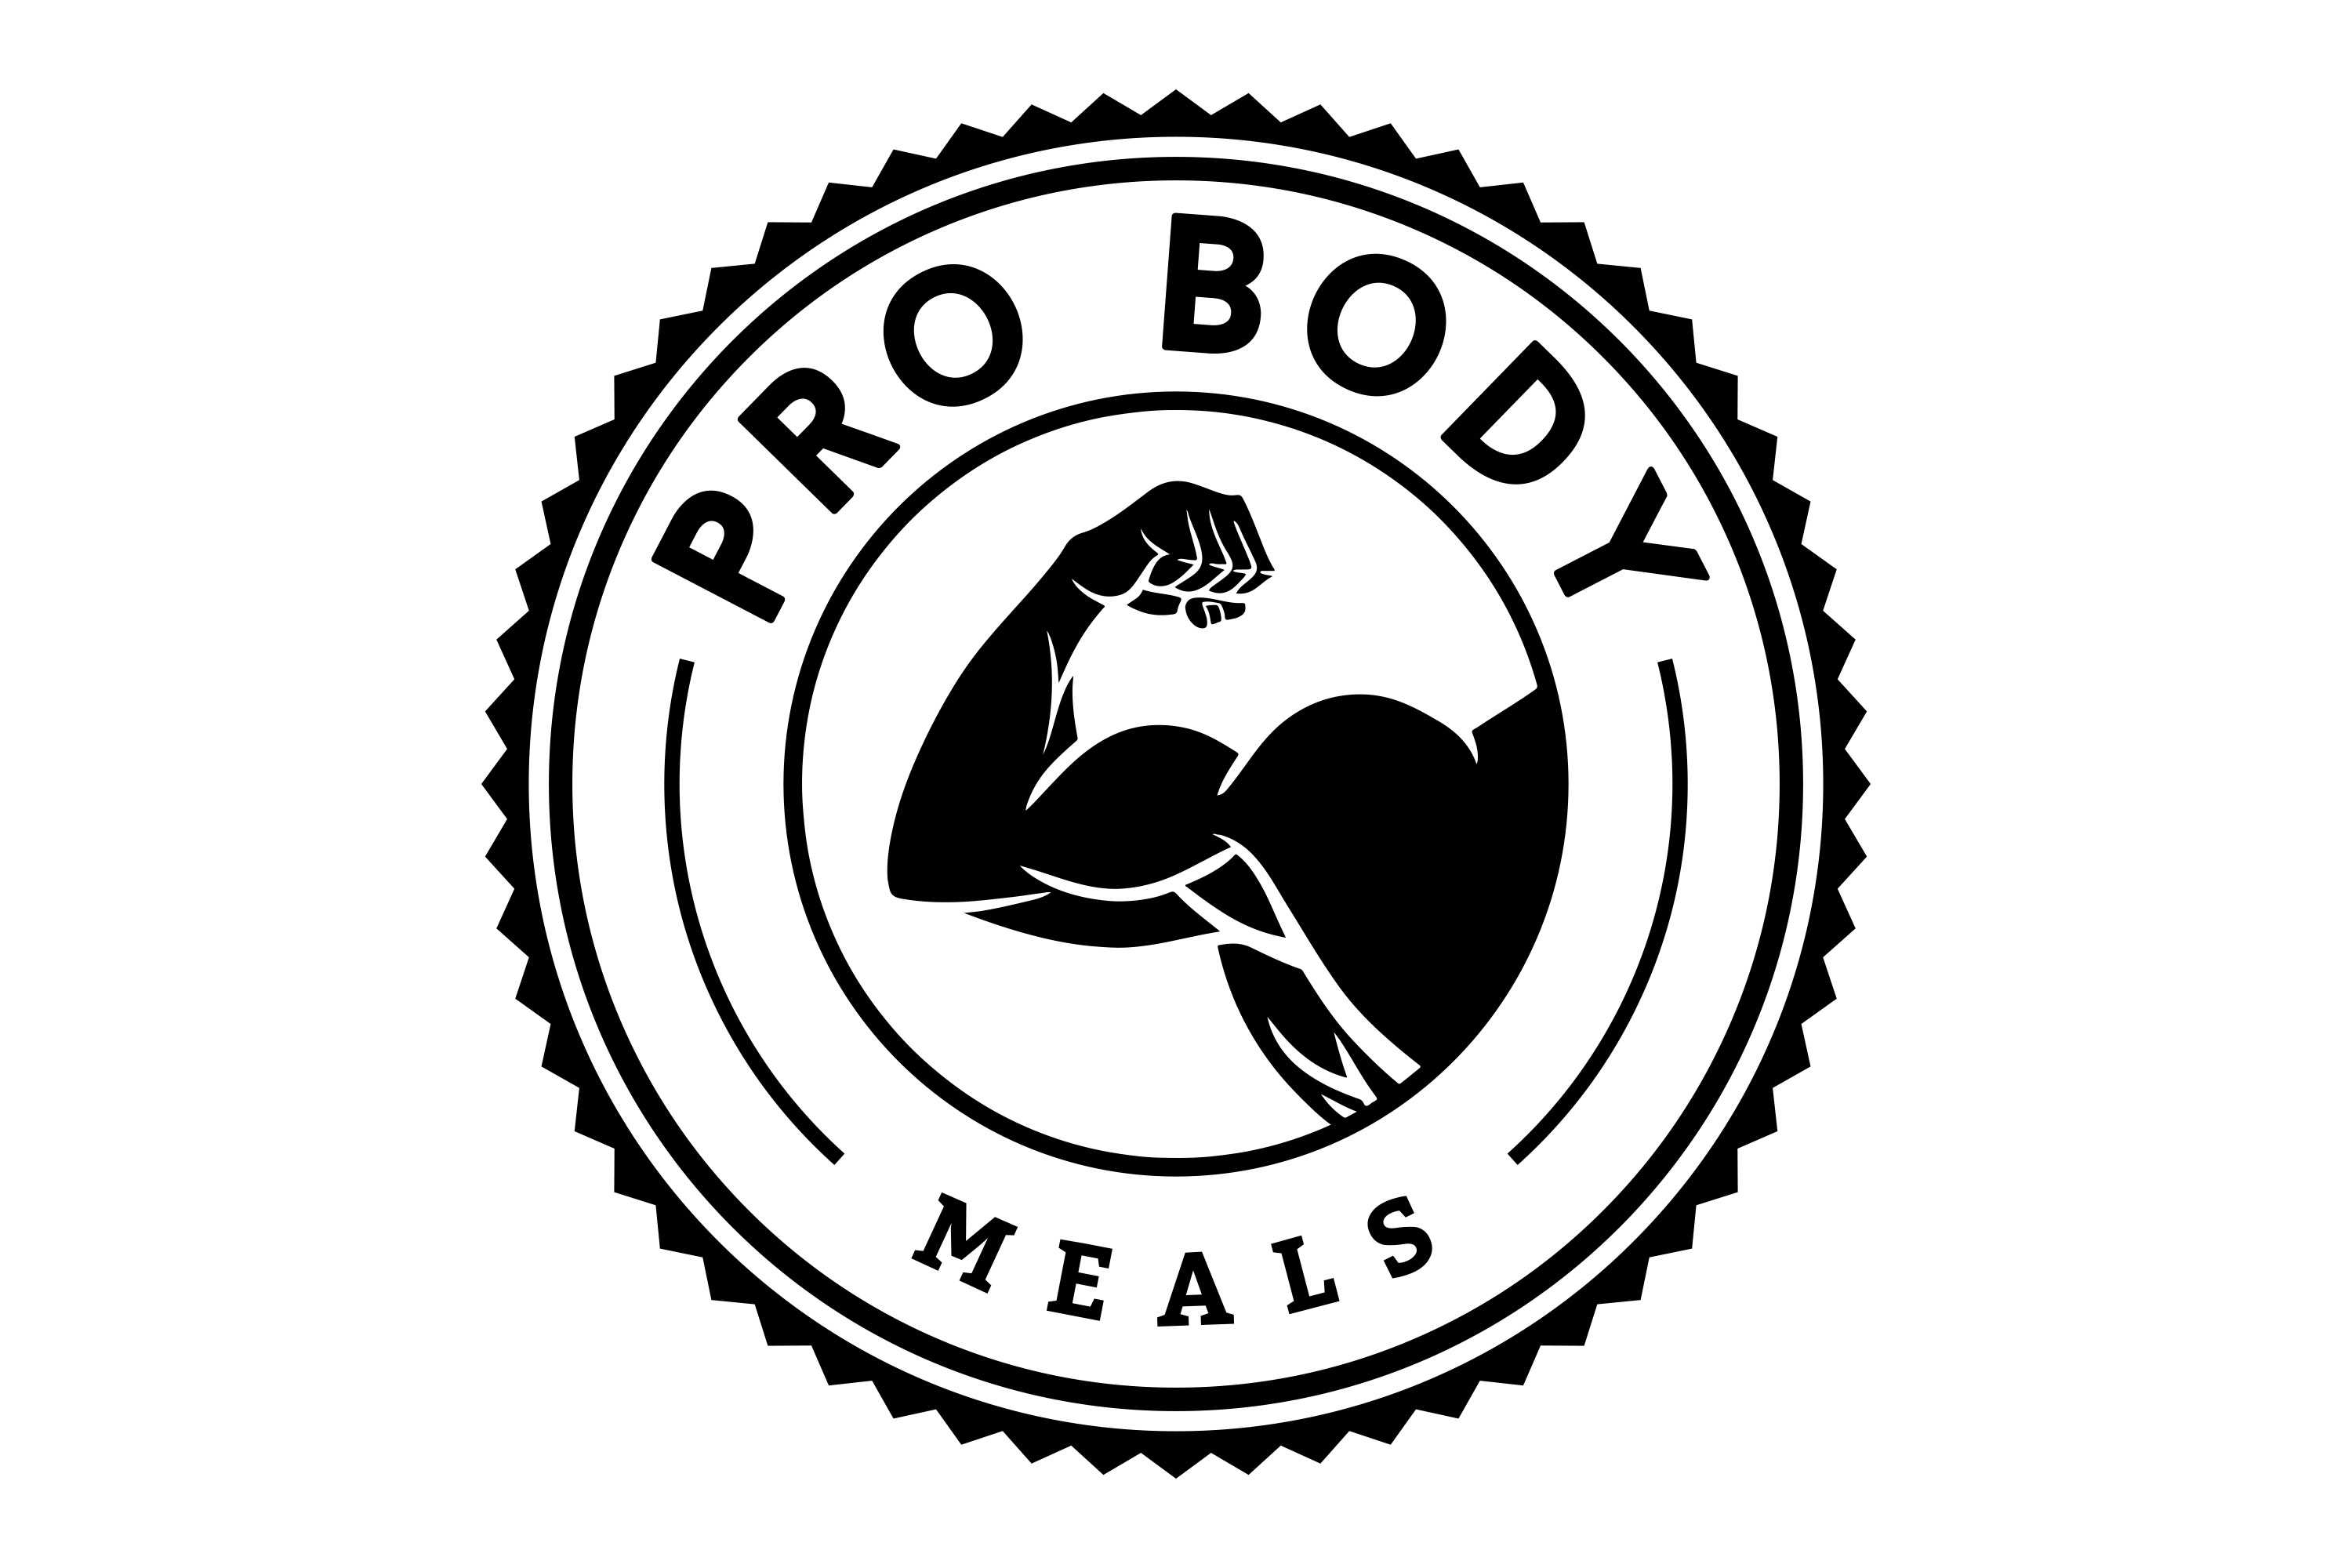 Pro Body Meals